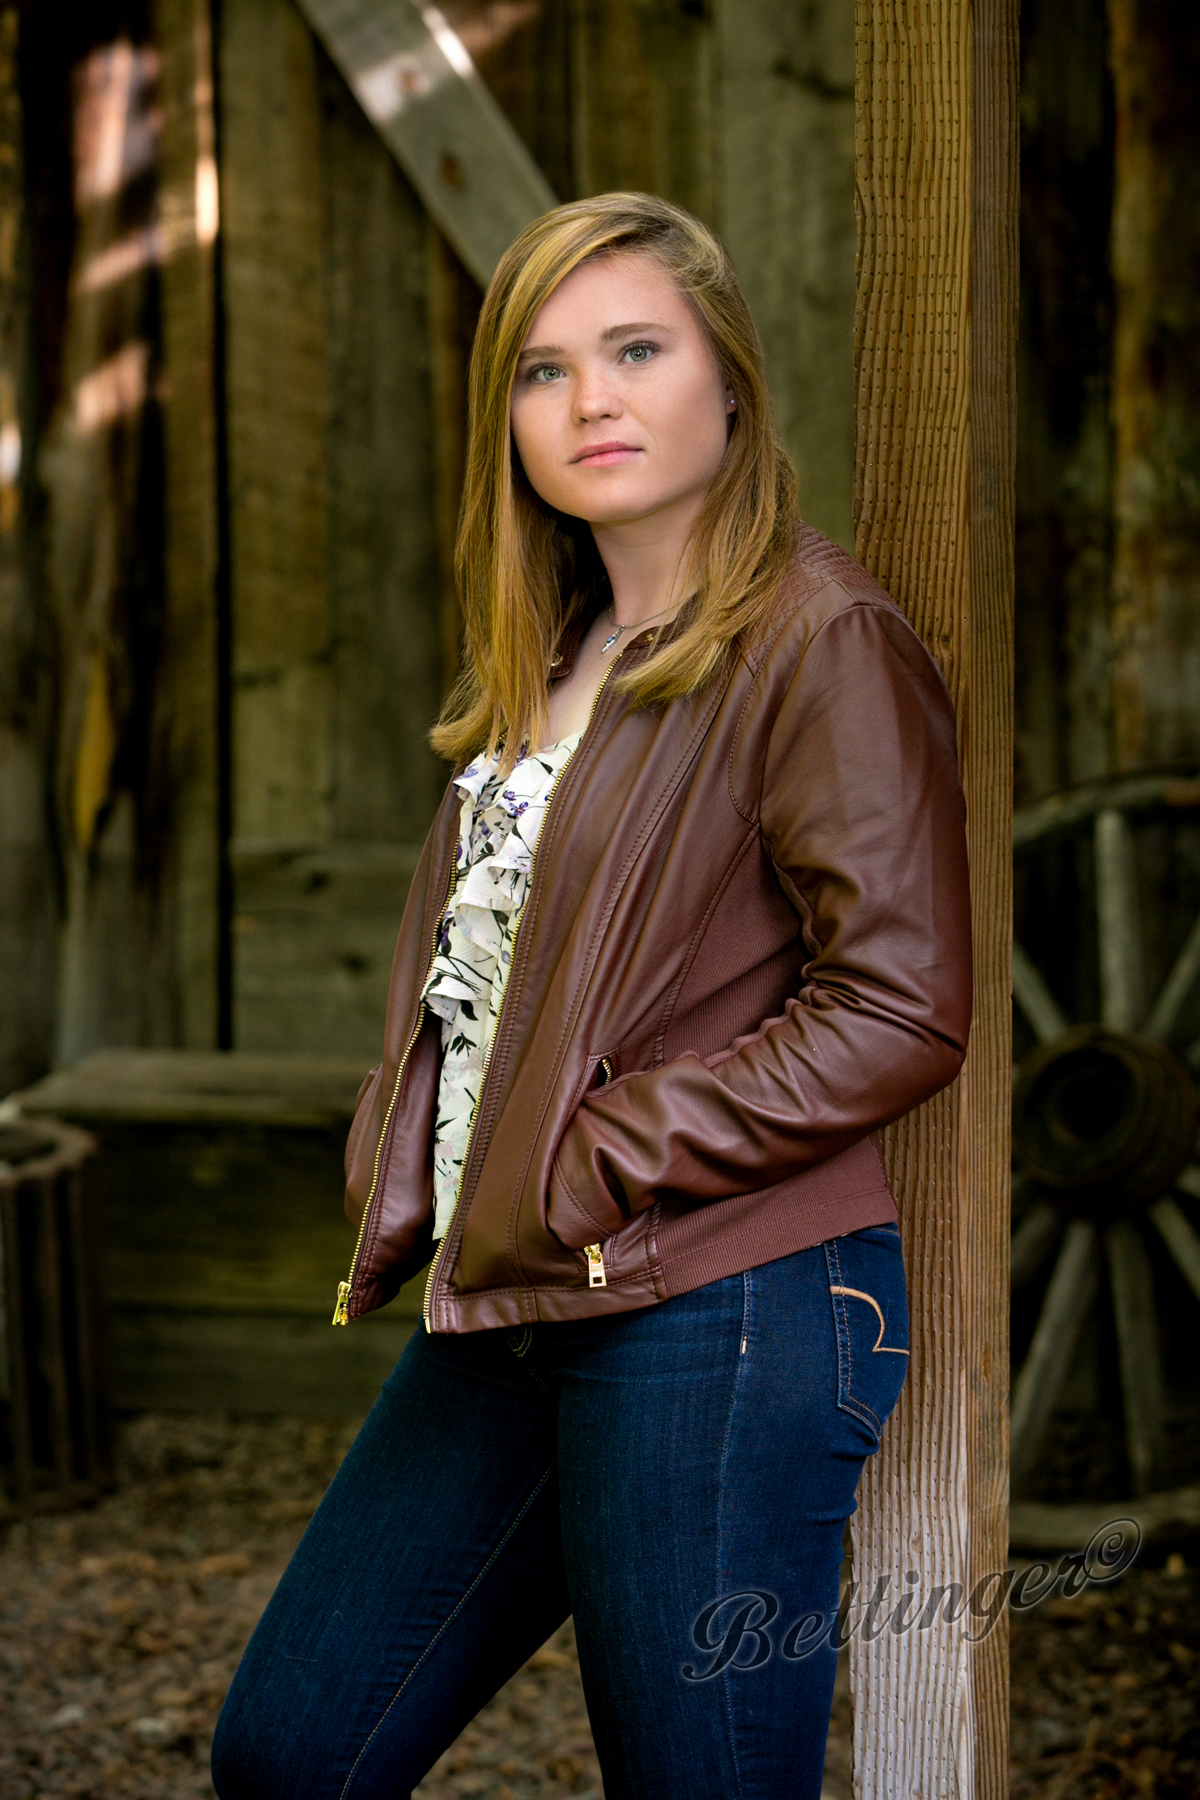 - Lauren aspires to be a business owner or possibly a marine biologist.